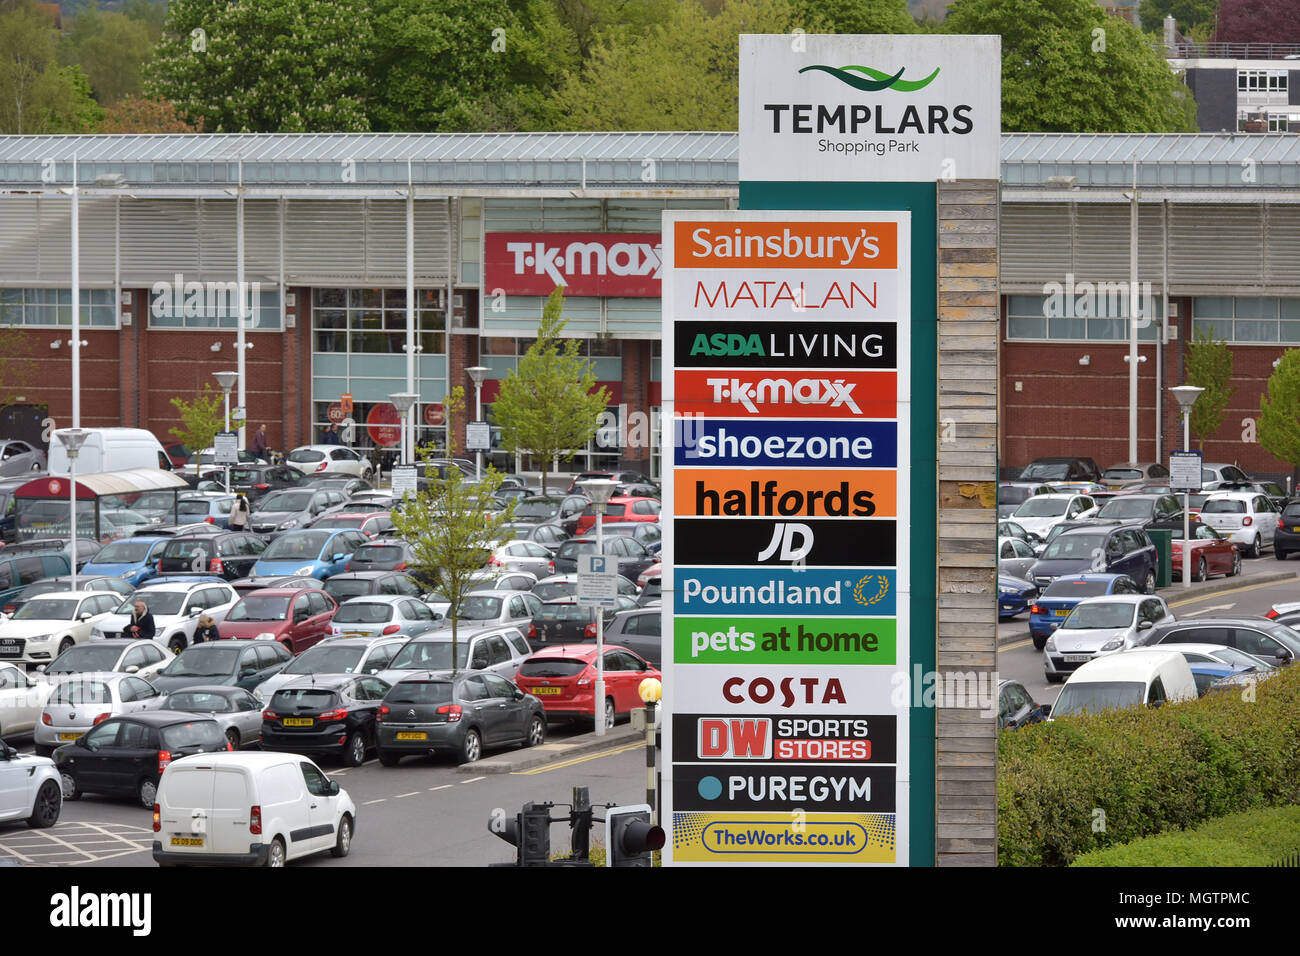 Oxfordshire, UK. . 29th Apr, 2018. The Templars shopping park in Cowley, Oxfordshire where the supermarkets Sainsbury's and Asda both have retail outlets. Credit: Bridget Coaker/Alamy Live News - Stock Image